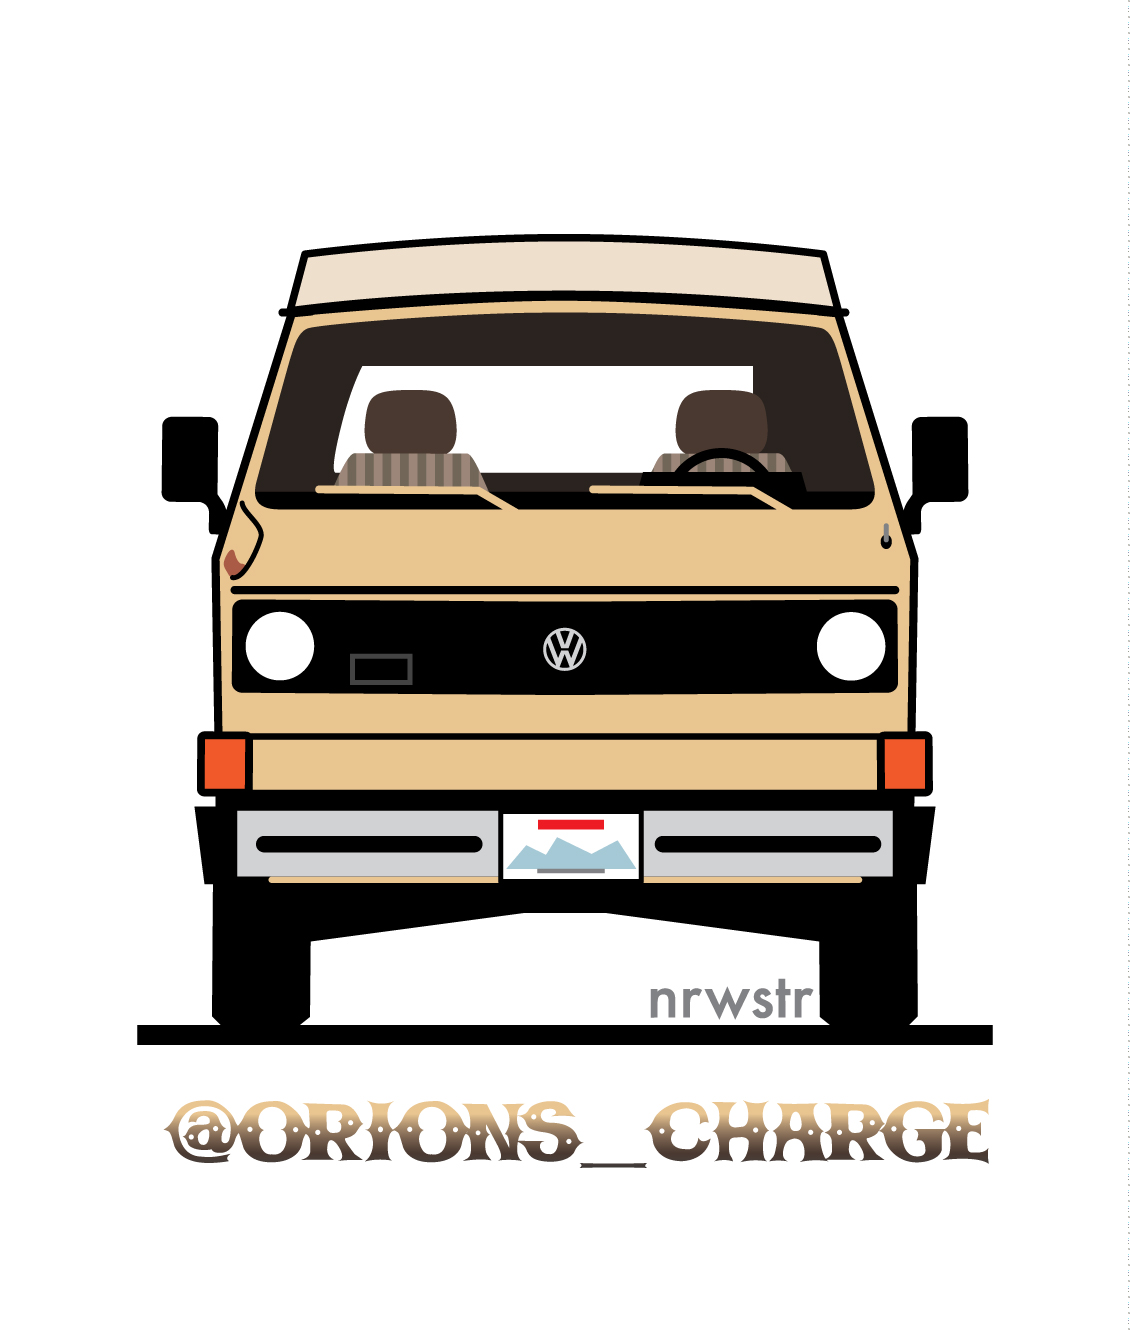 orions_charge-front-view.jpg